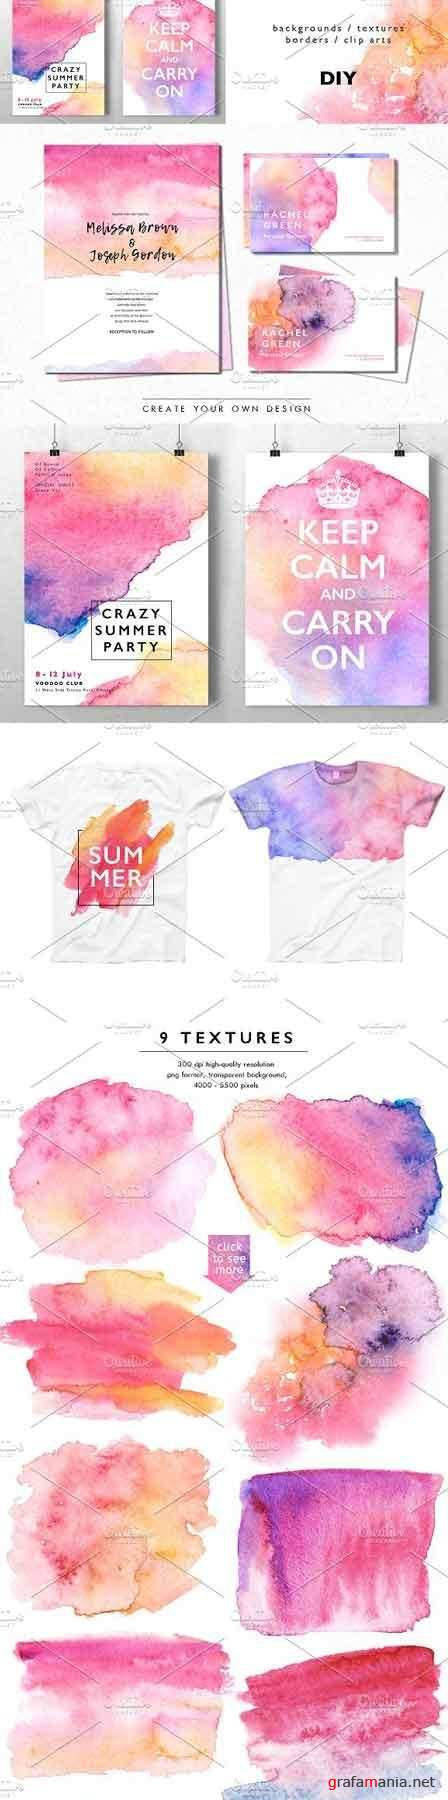 Watercolor Abstract Background Pack 1614652